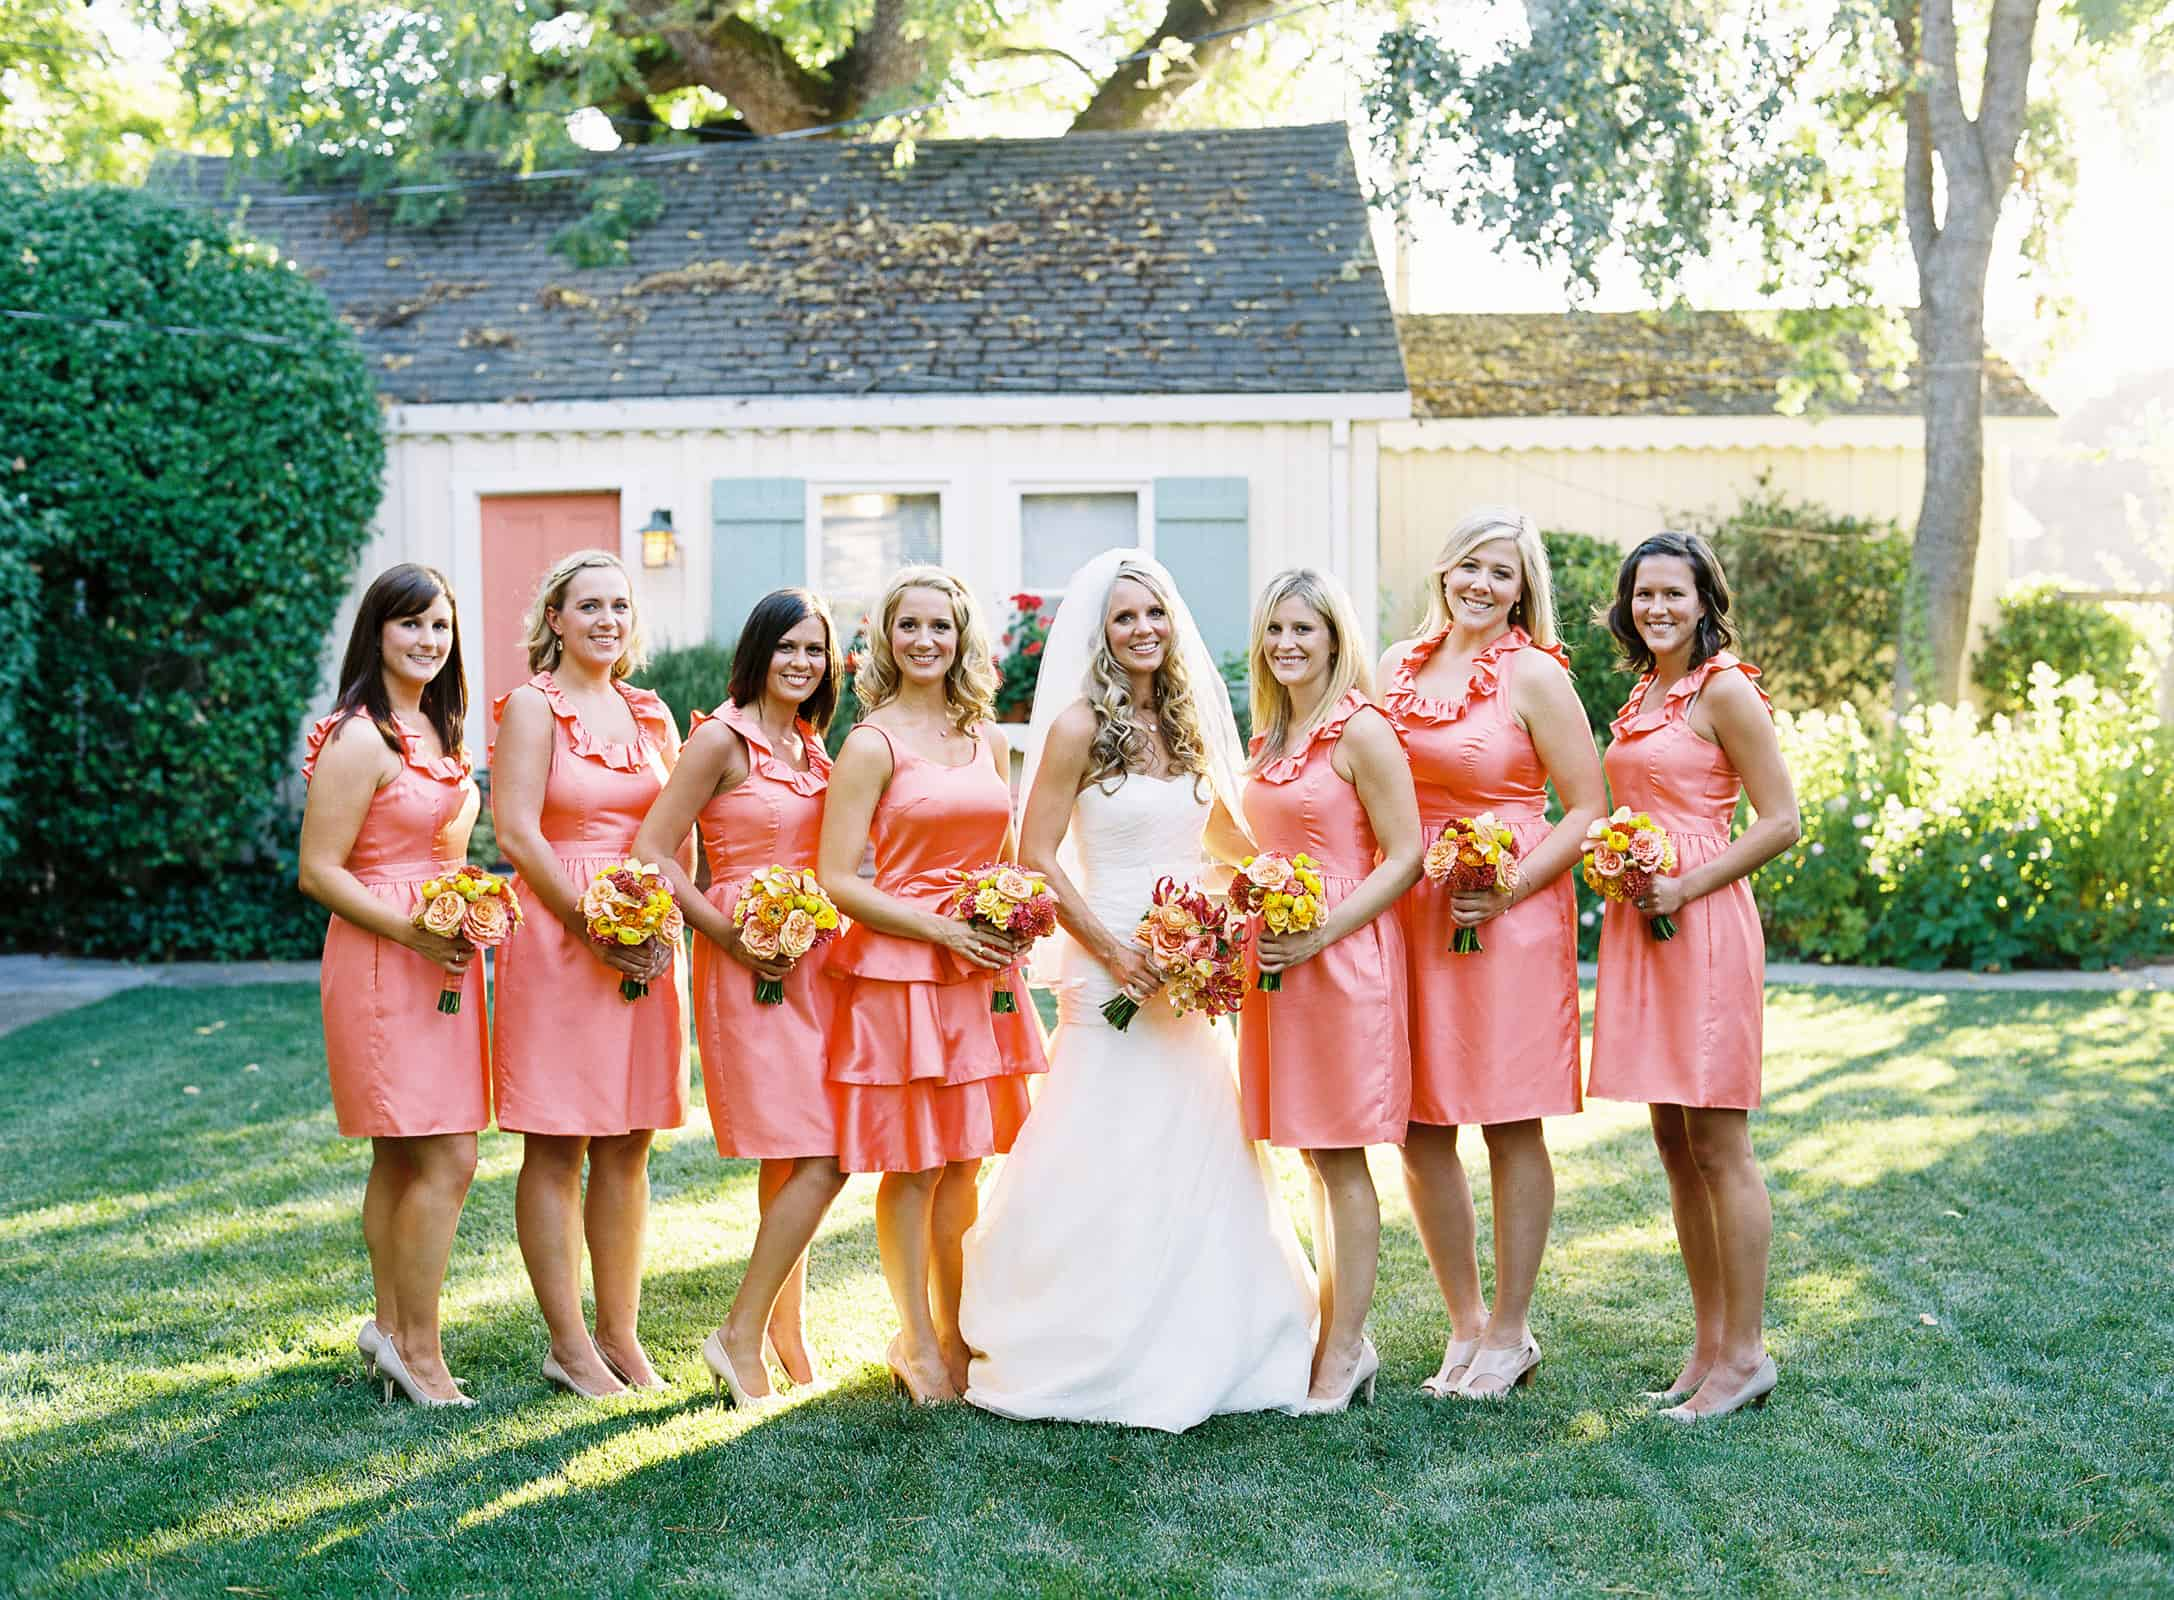 Bride with bridesmaids in peach dresses